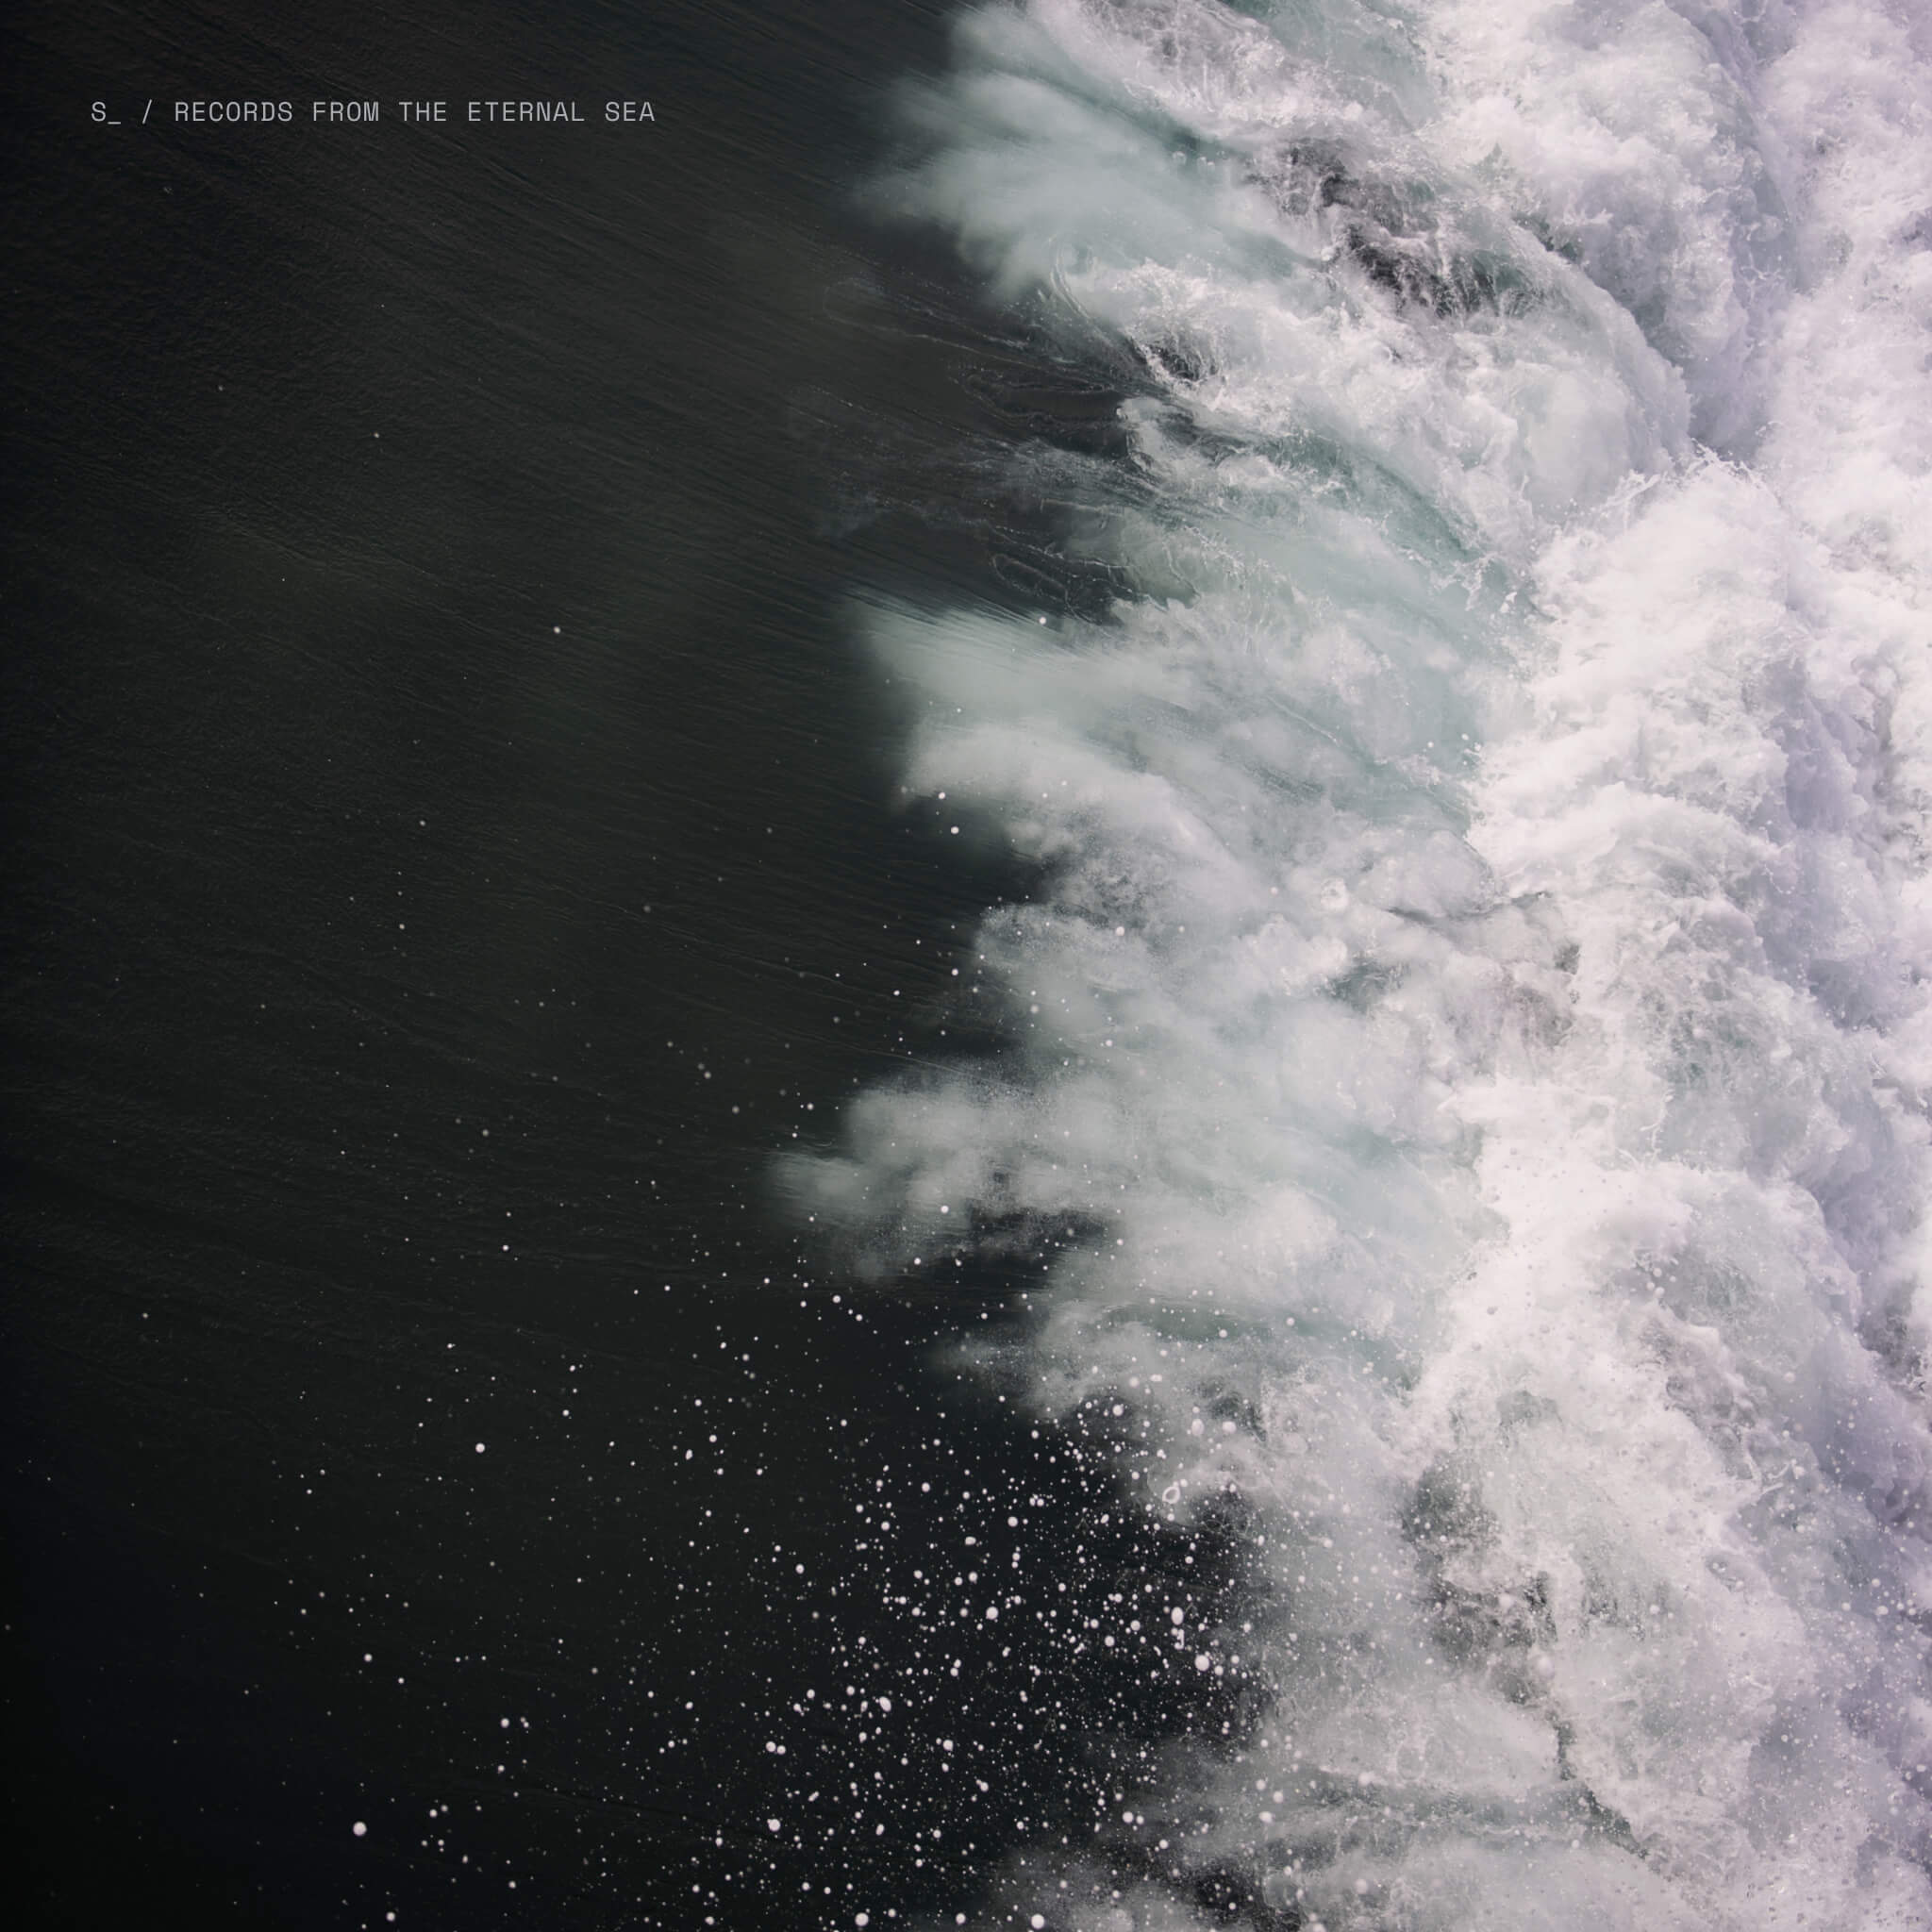 Aerial view of crashing ocean waves for the Records From The Eternal Sea album cover